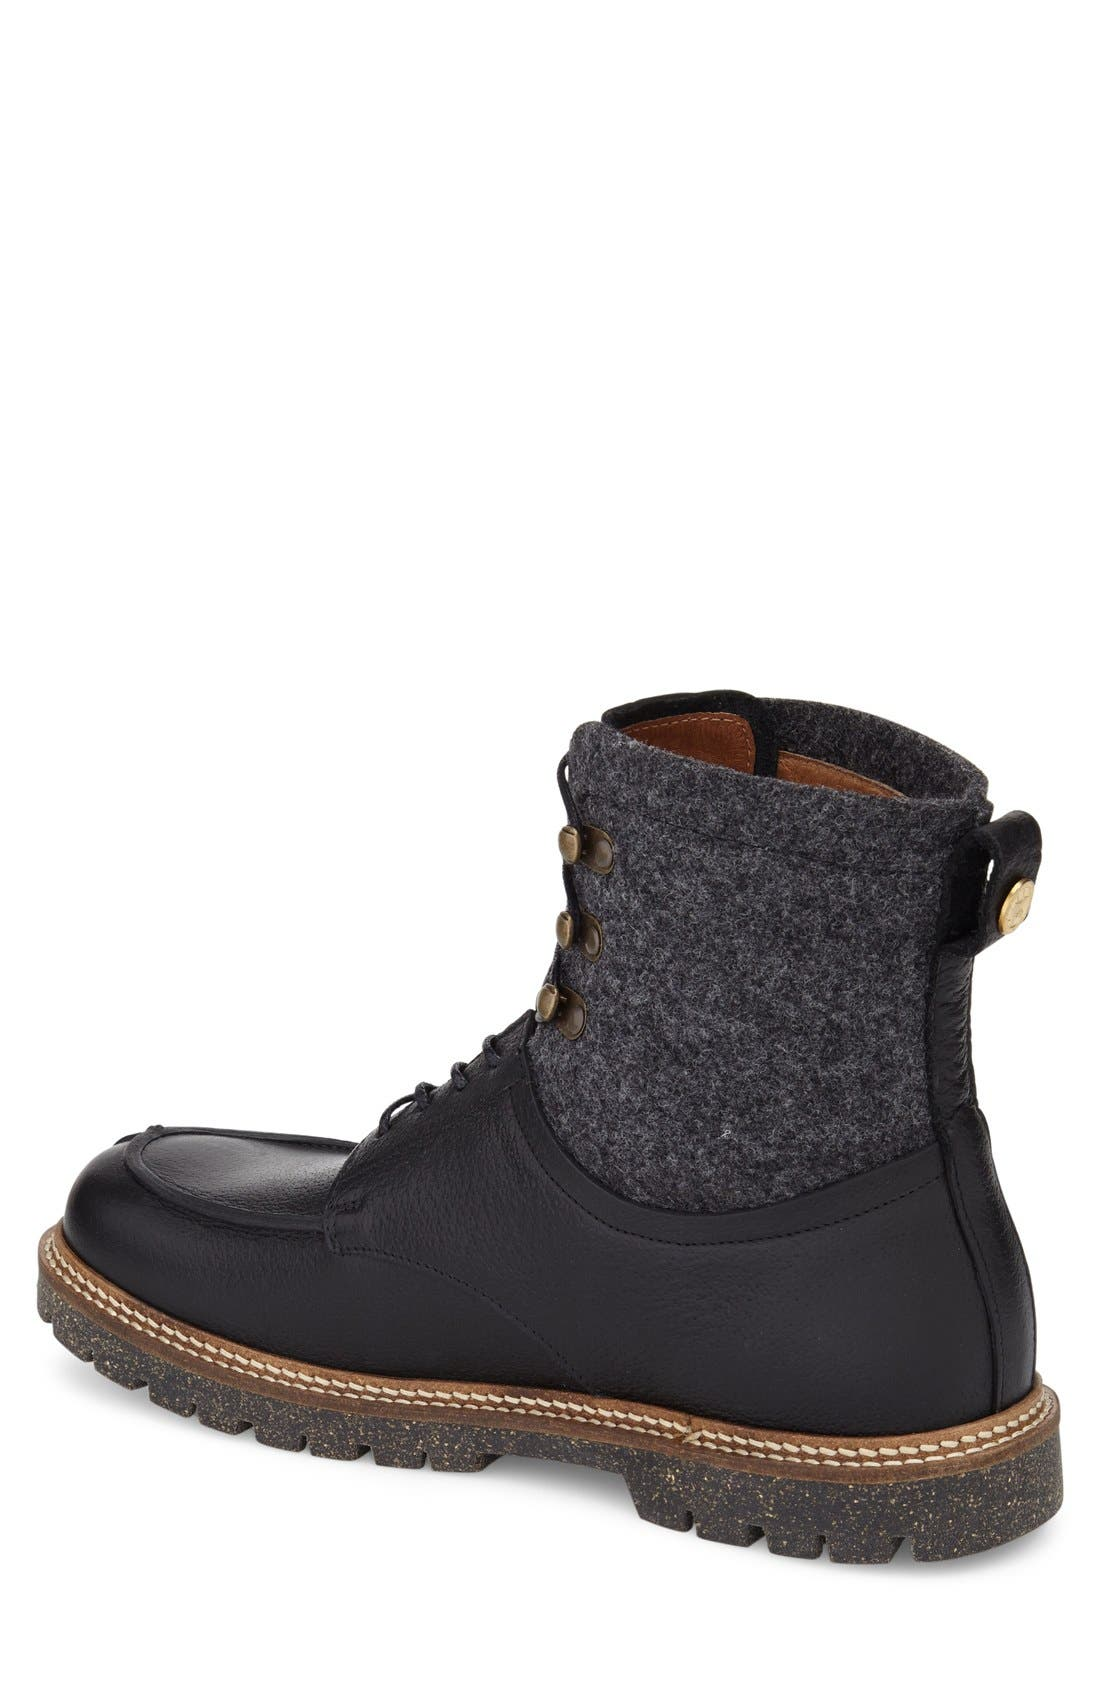 Timmins Split Toe Boot,                             Alternate thumbnail 2, color,                             001